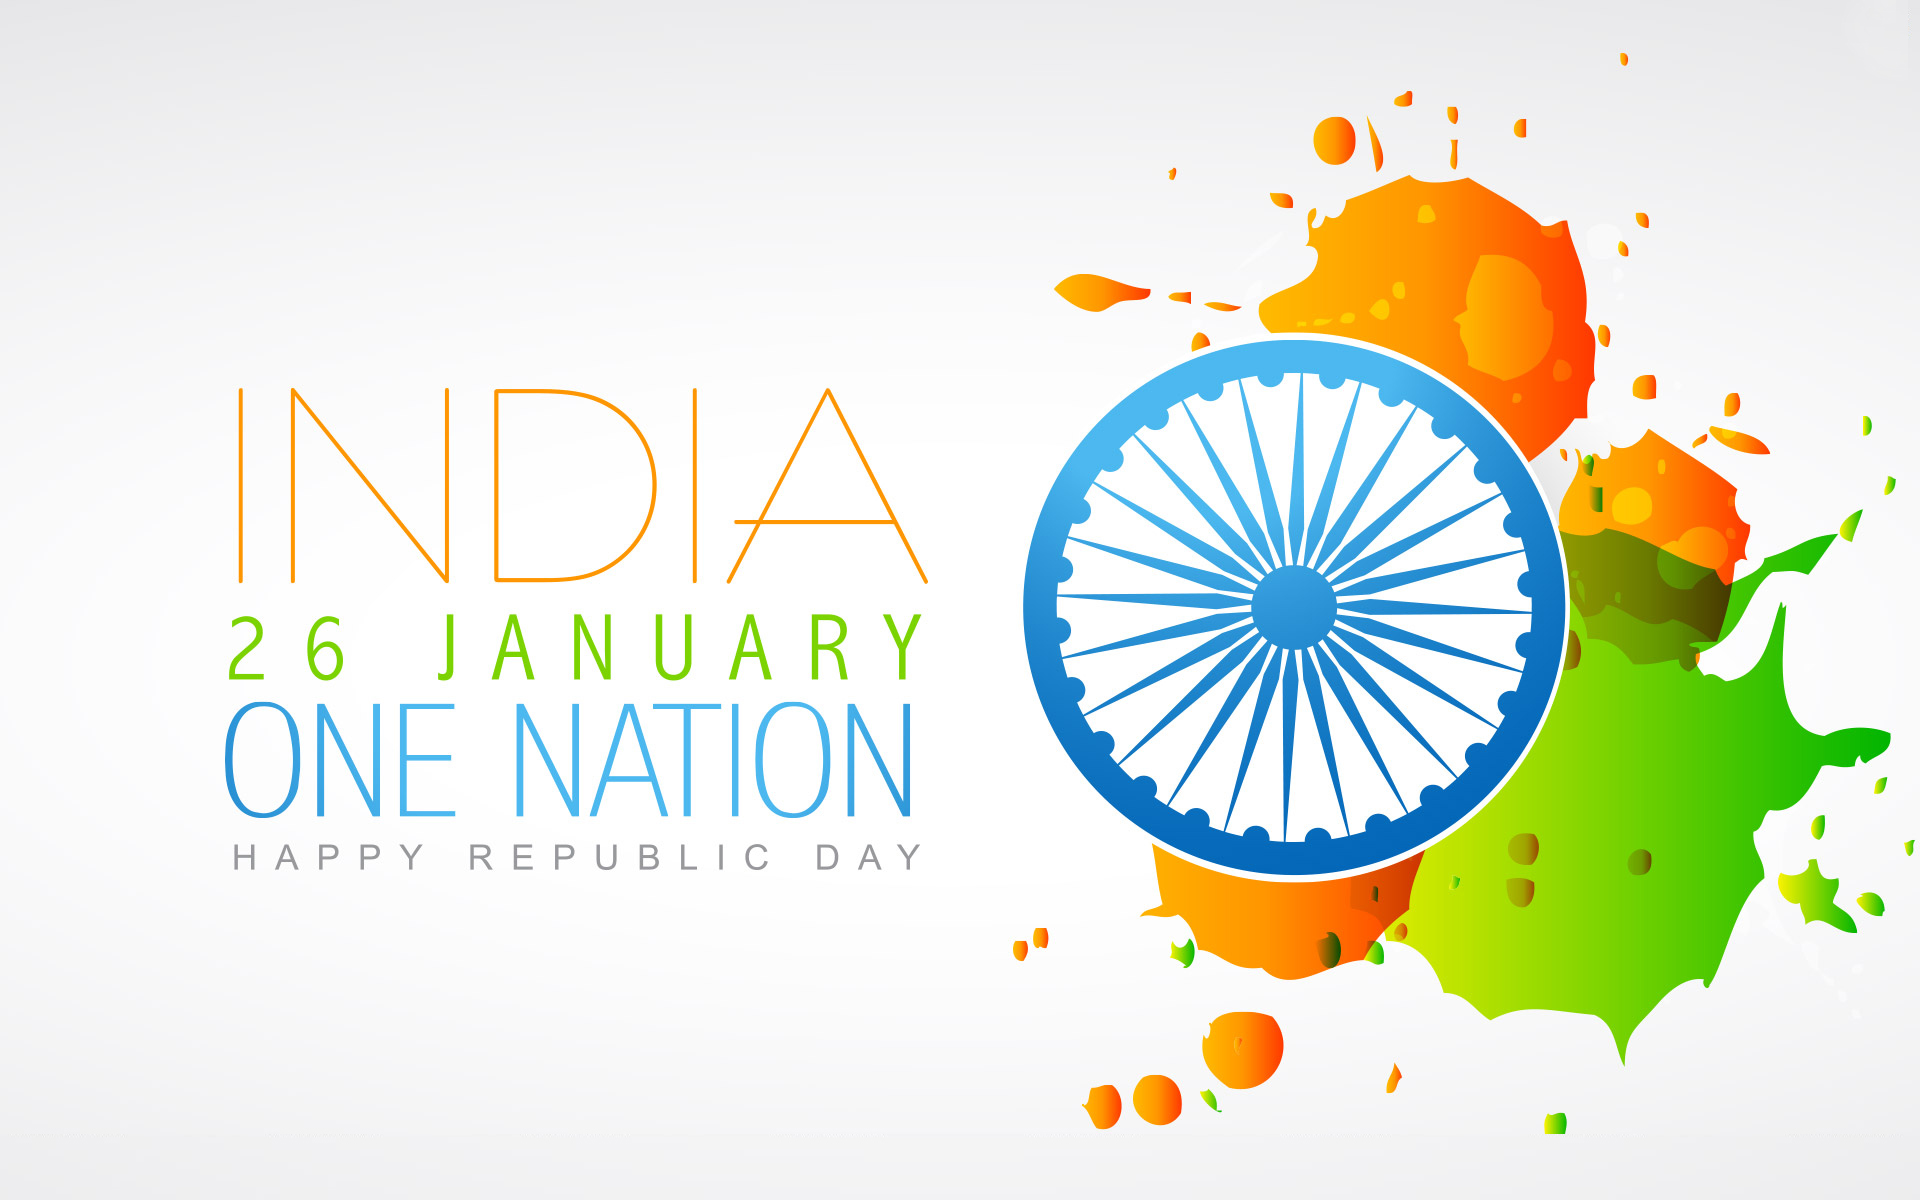 india unity strength hd new nice wallpapers free download